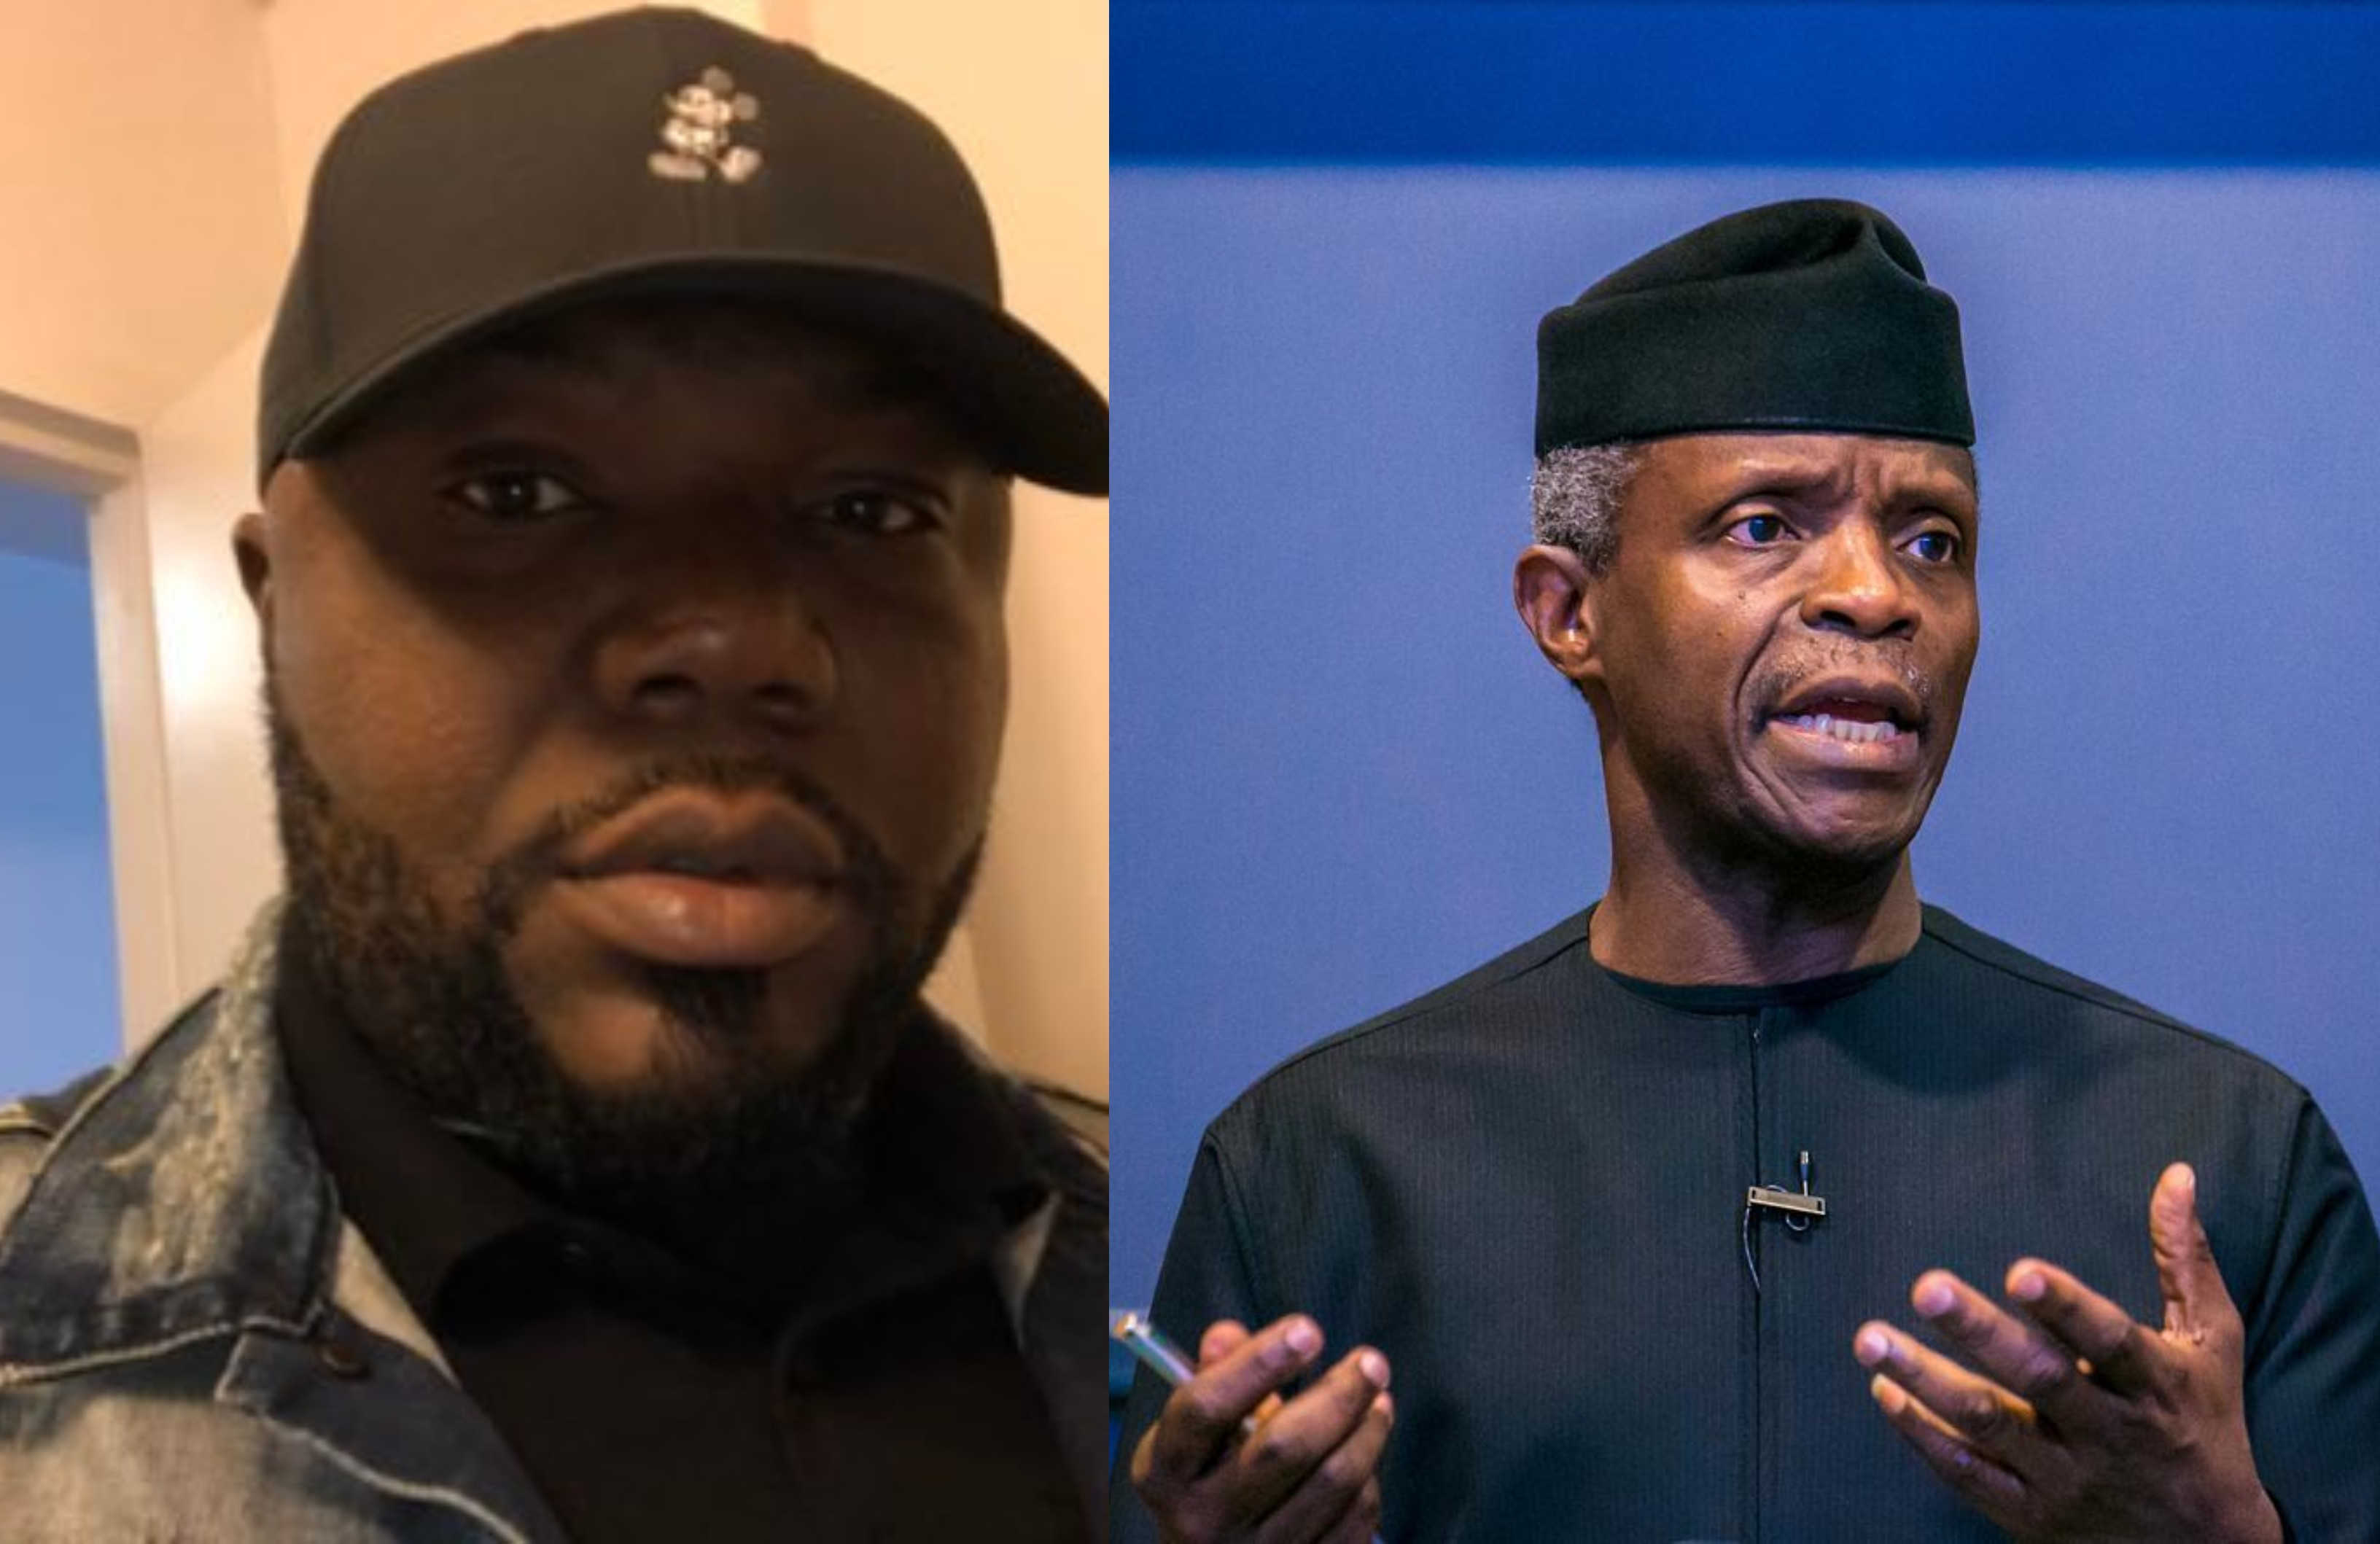 If Osinbajo wants to go to court, he needs to resign first and sue me - Jackson Ude reacts to Vice President